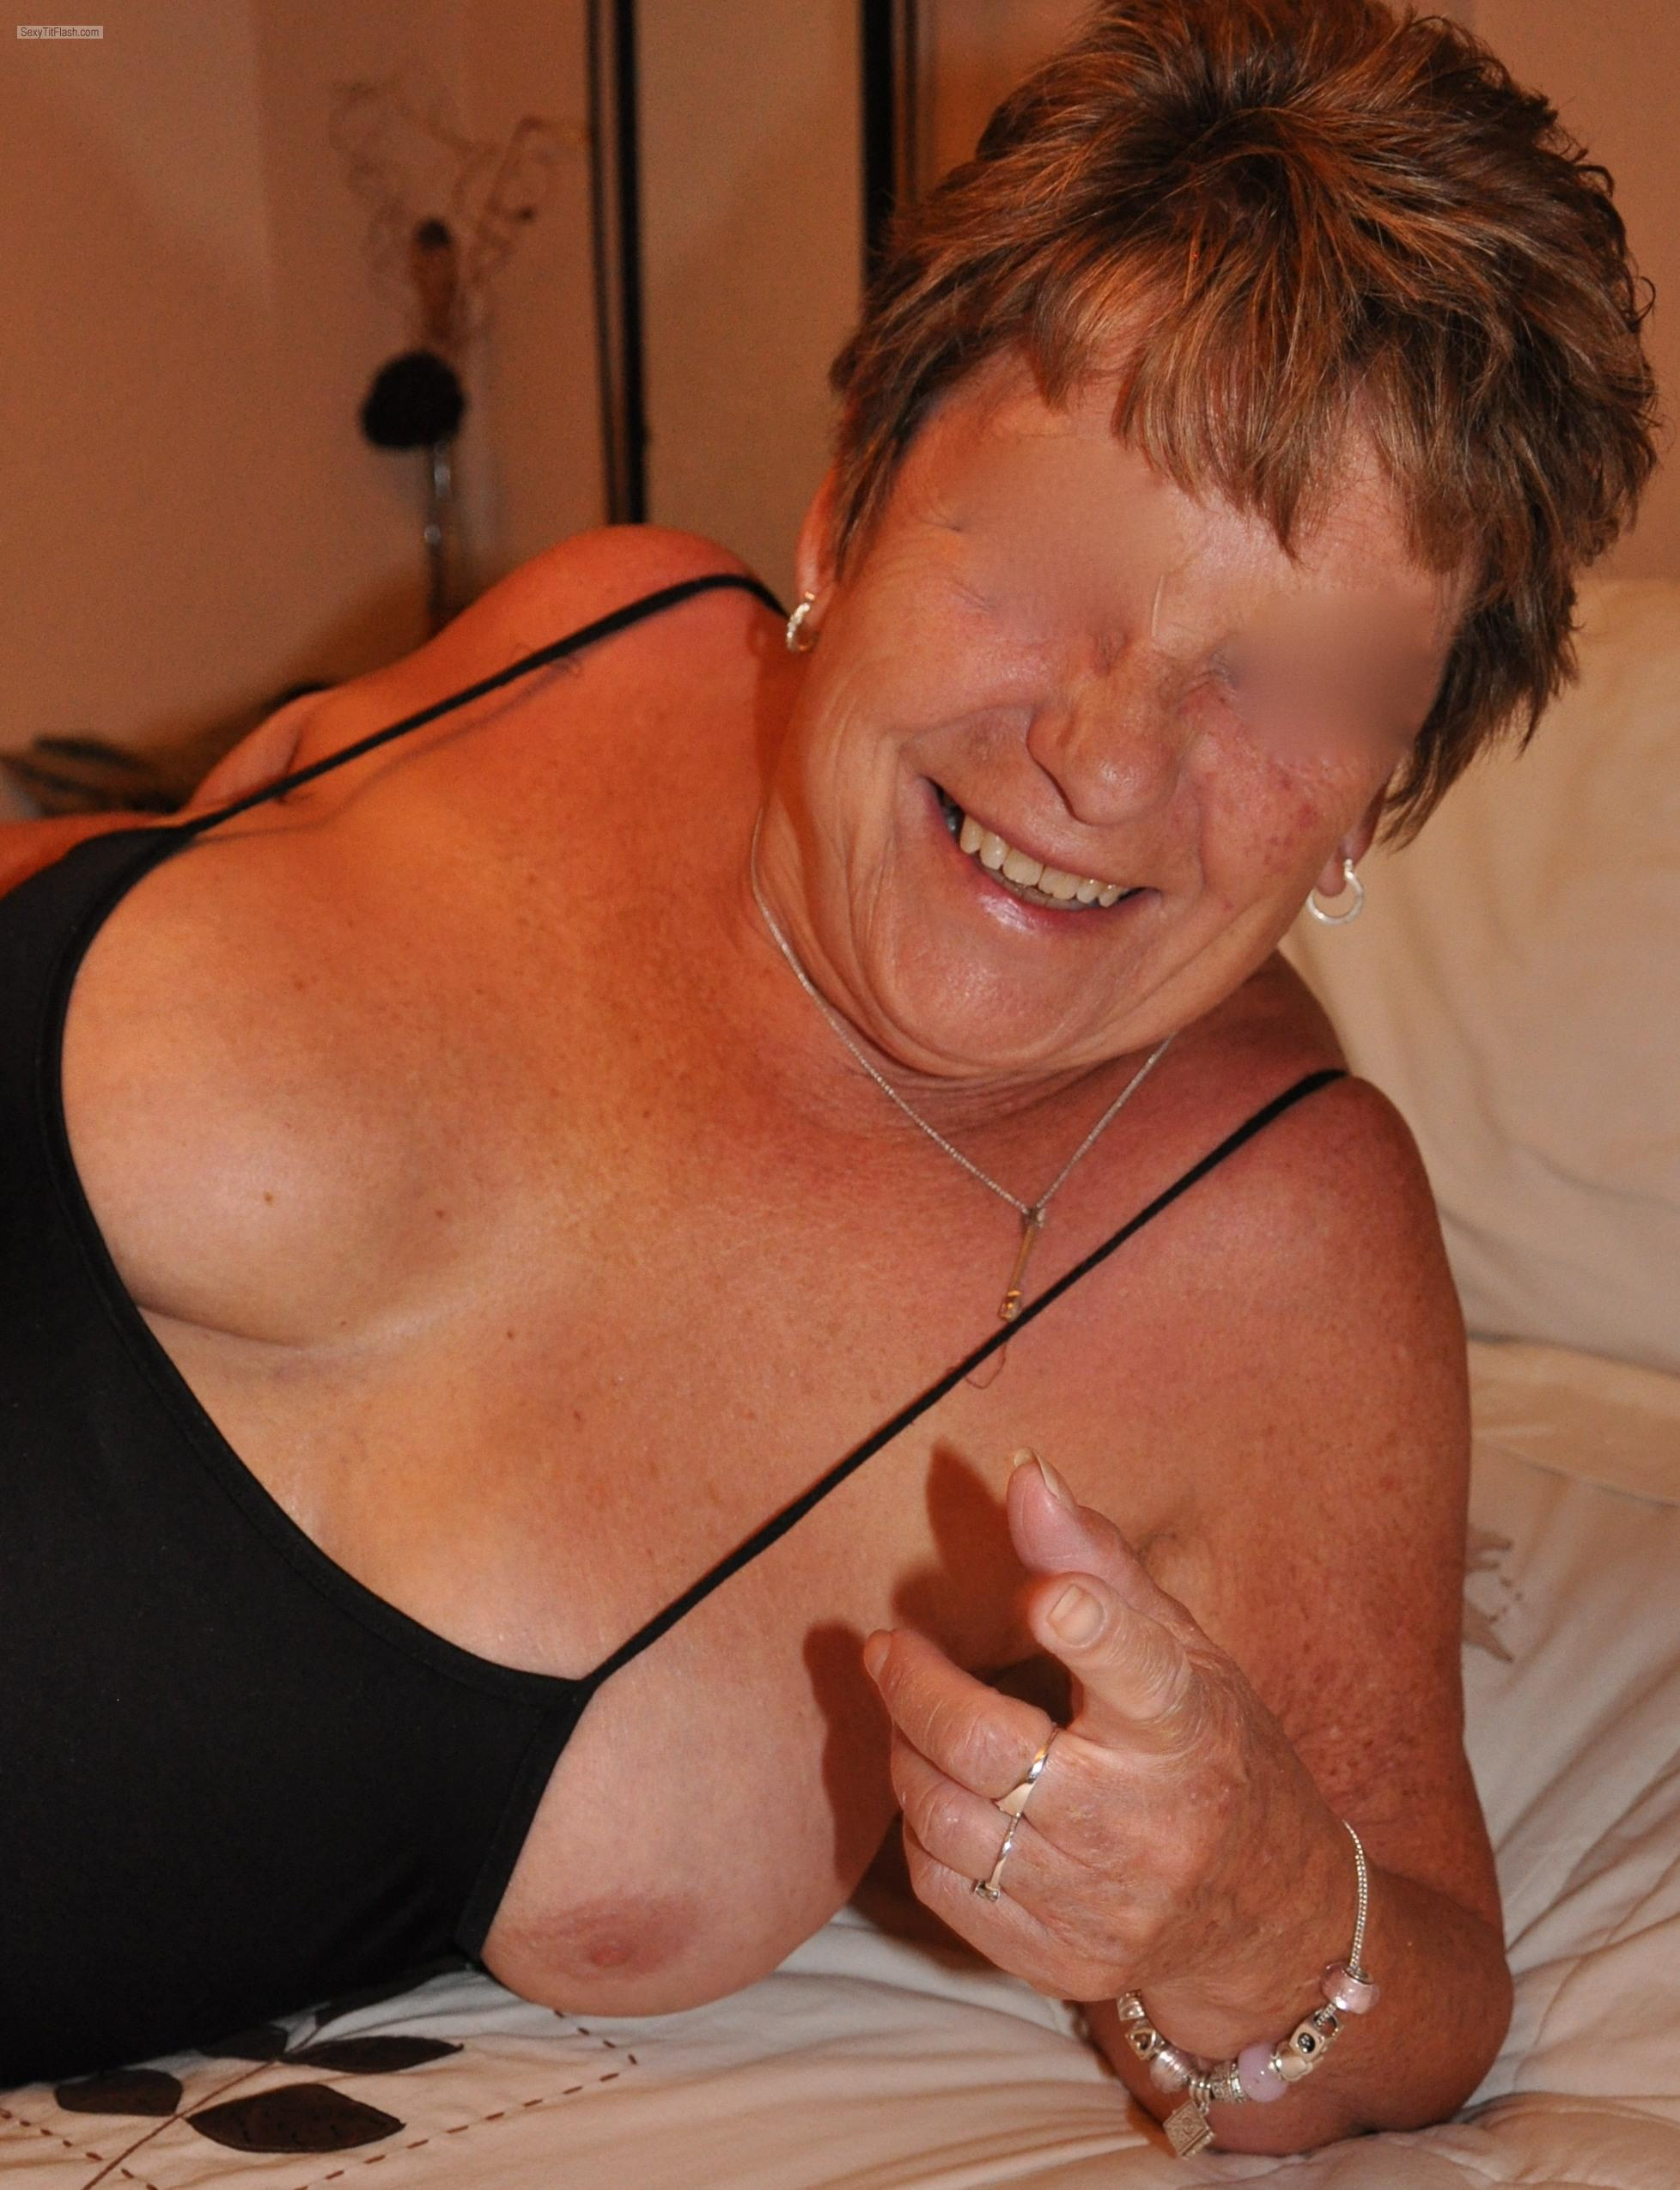 Tit Flash: Room Mate's Medium Tits - Topless Sexy M from United Kingdom